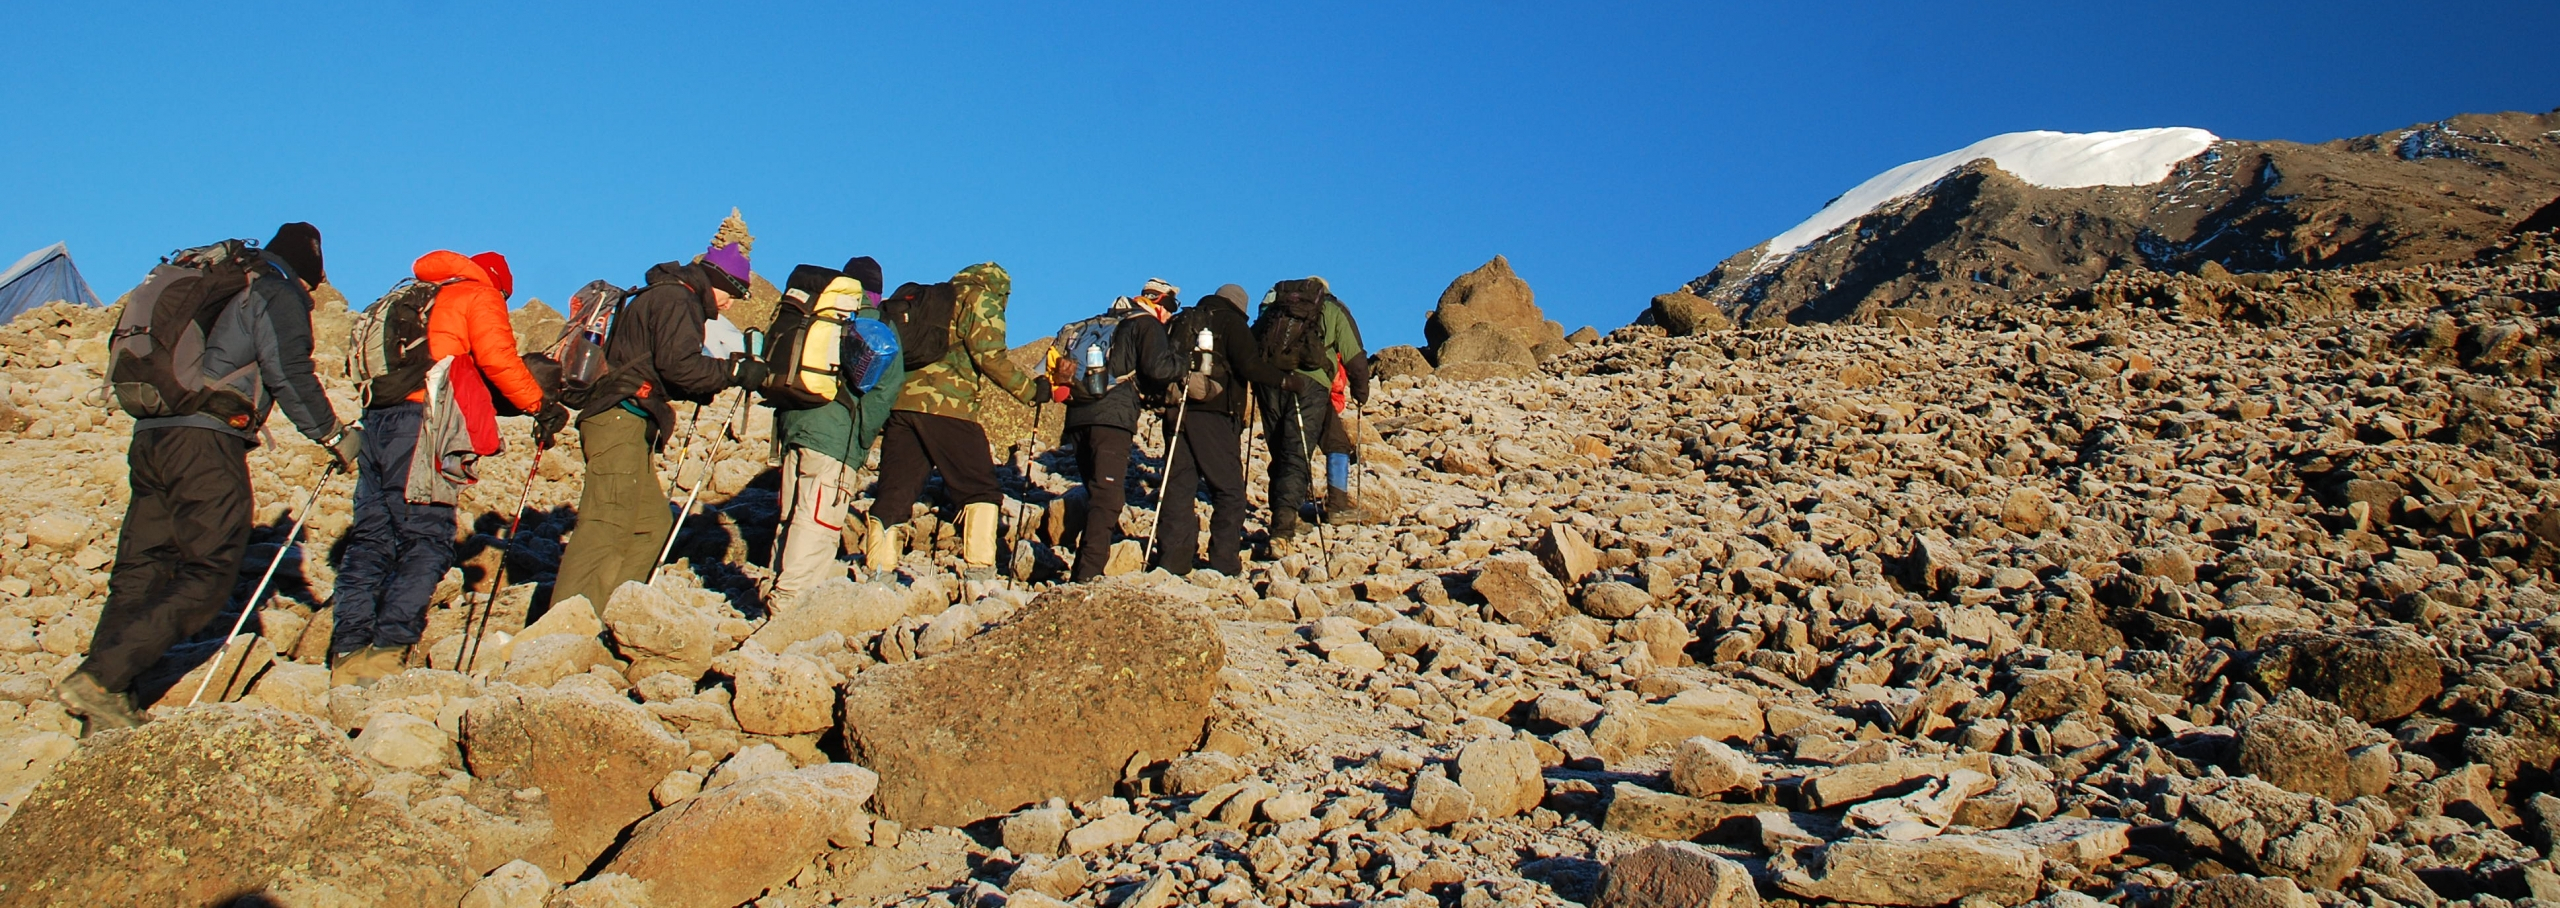 A line of trekkers slowly making their way up towards Rebmann Glacier on Kilimanjaro against a vivid blue sky